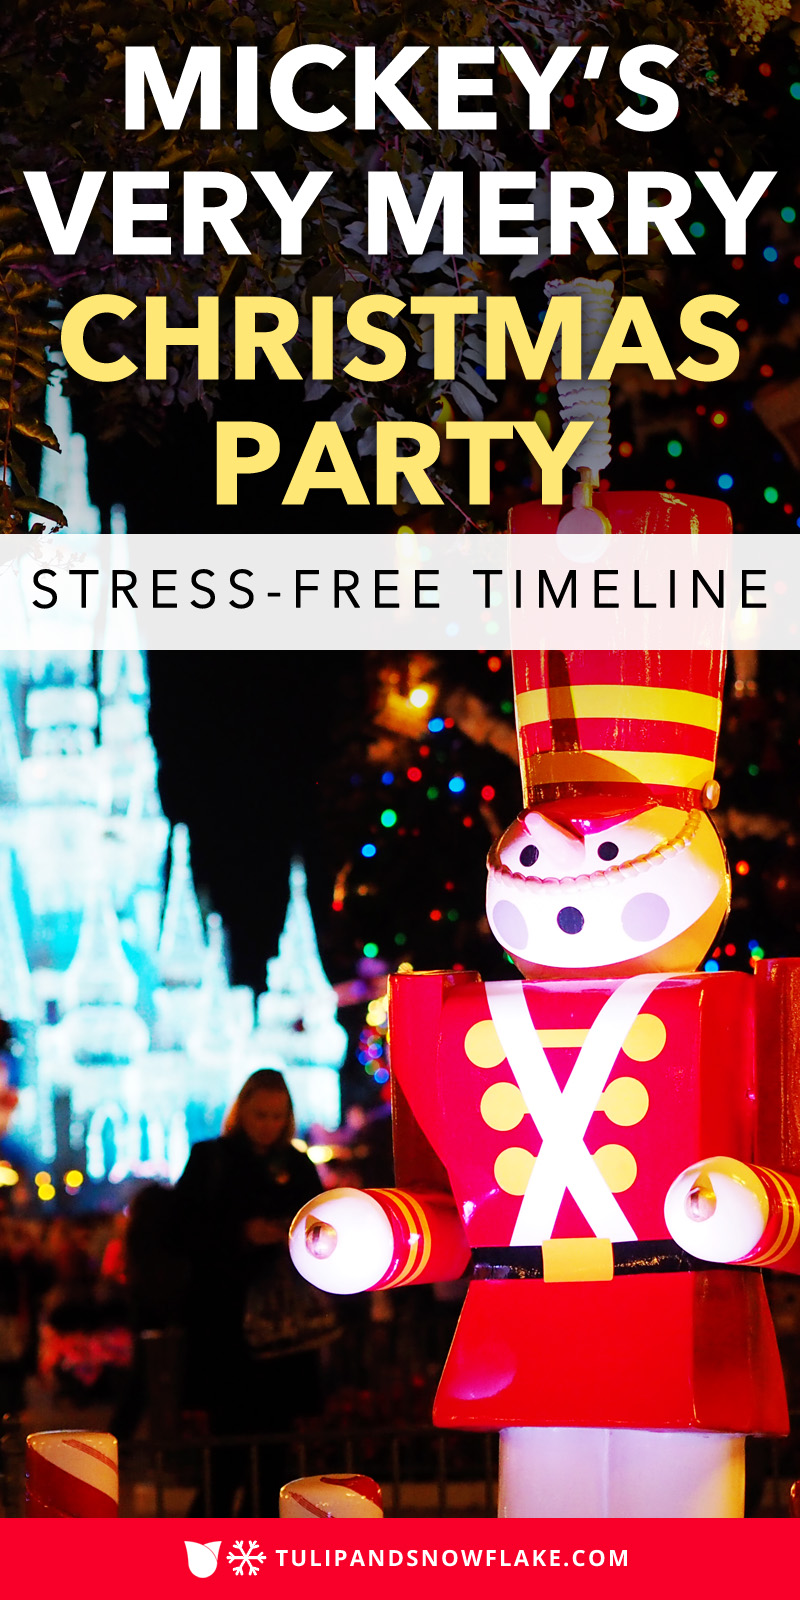 Mickey's Very Merry Christmas Party timeline